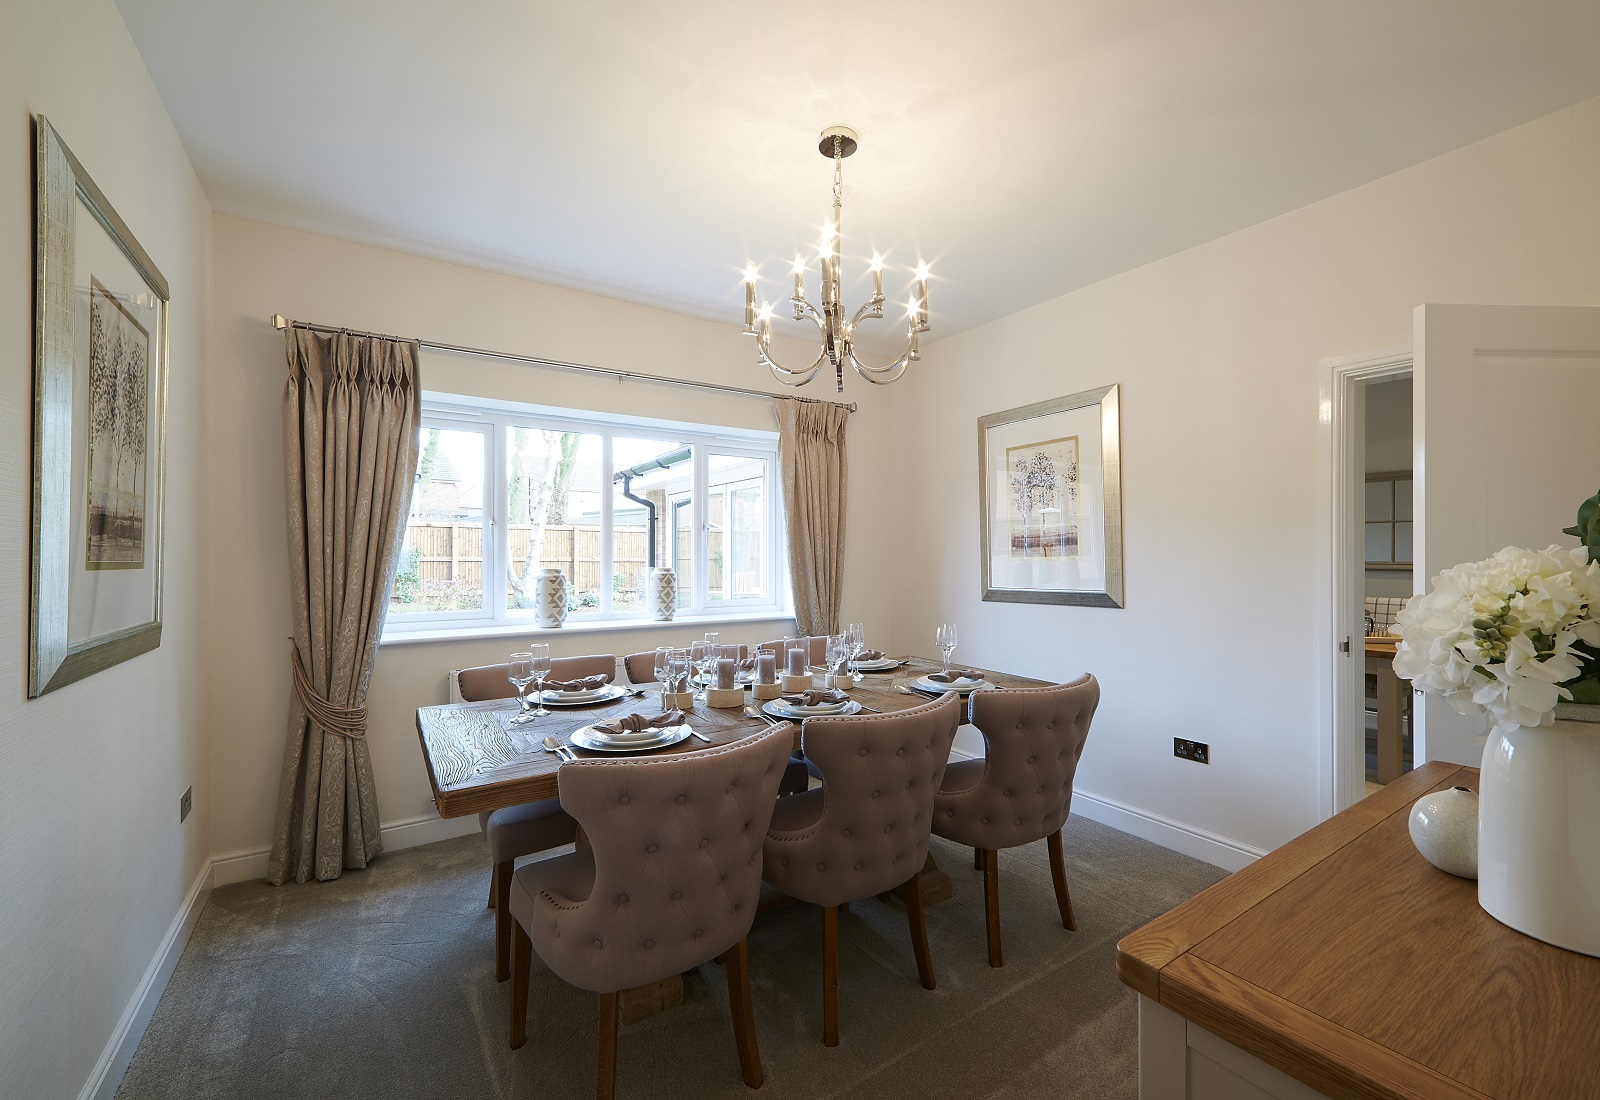 ROOMY: Inside the property on Stonecross Meadows. Picture: Zoopla